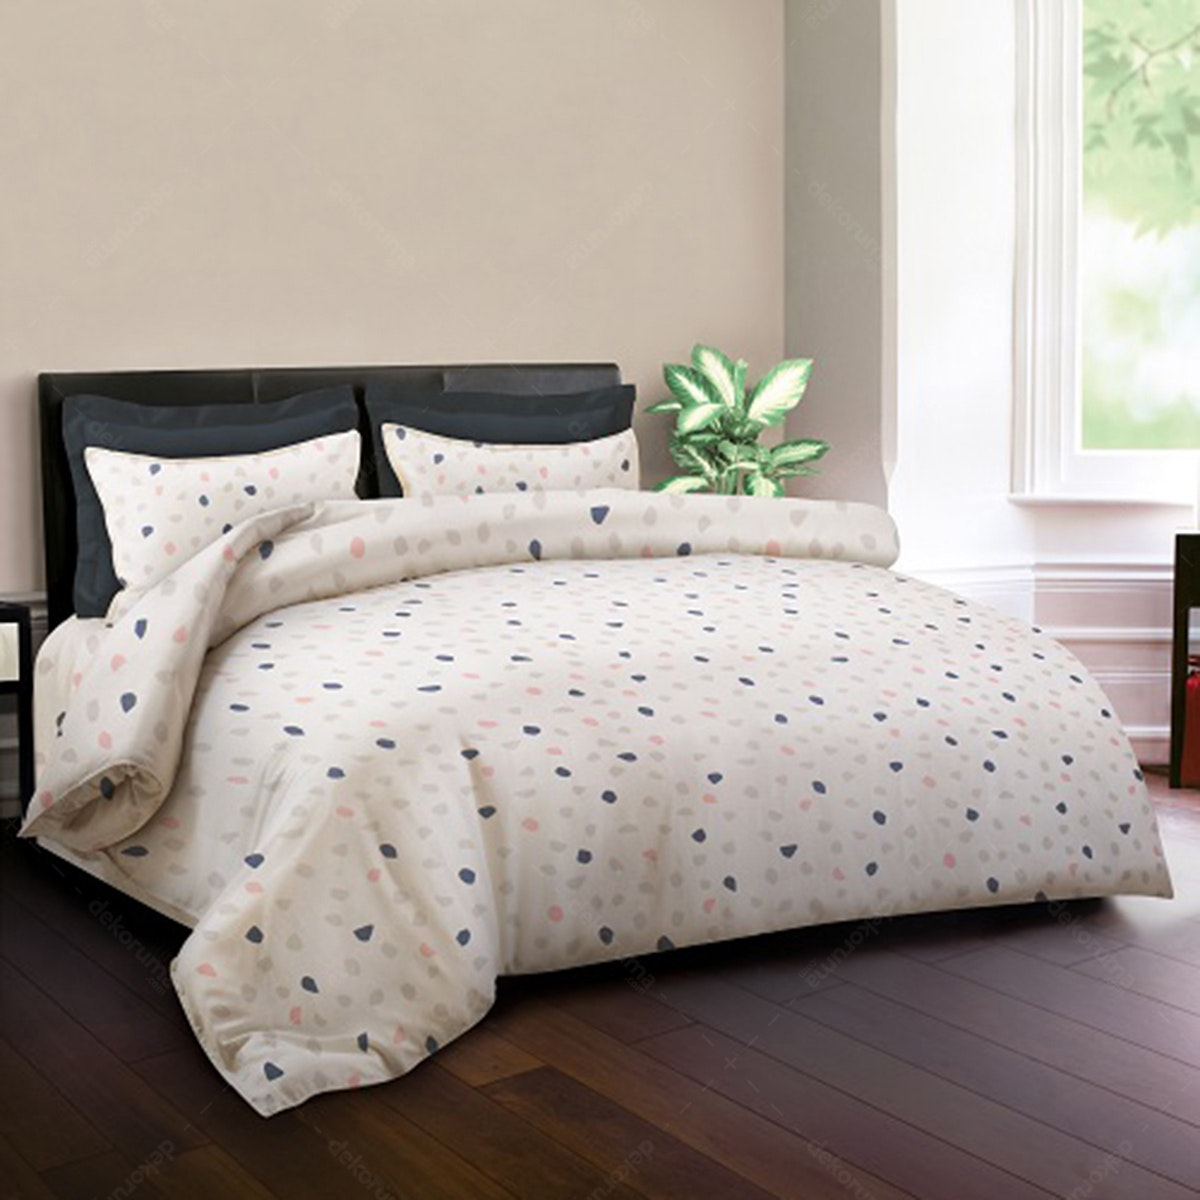 King Rabbit Set Bed Cover & Sprei Sarung Bantal Queen Motif Sugar - Peach Uk 160x200x40 cm